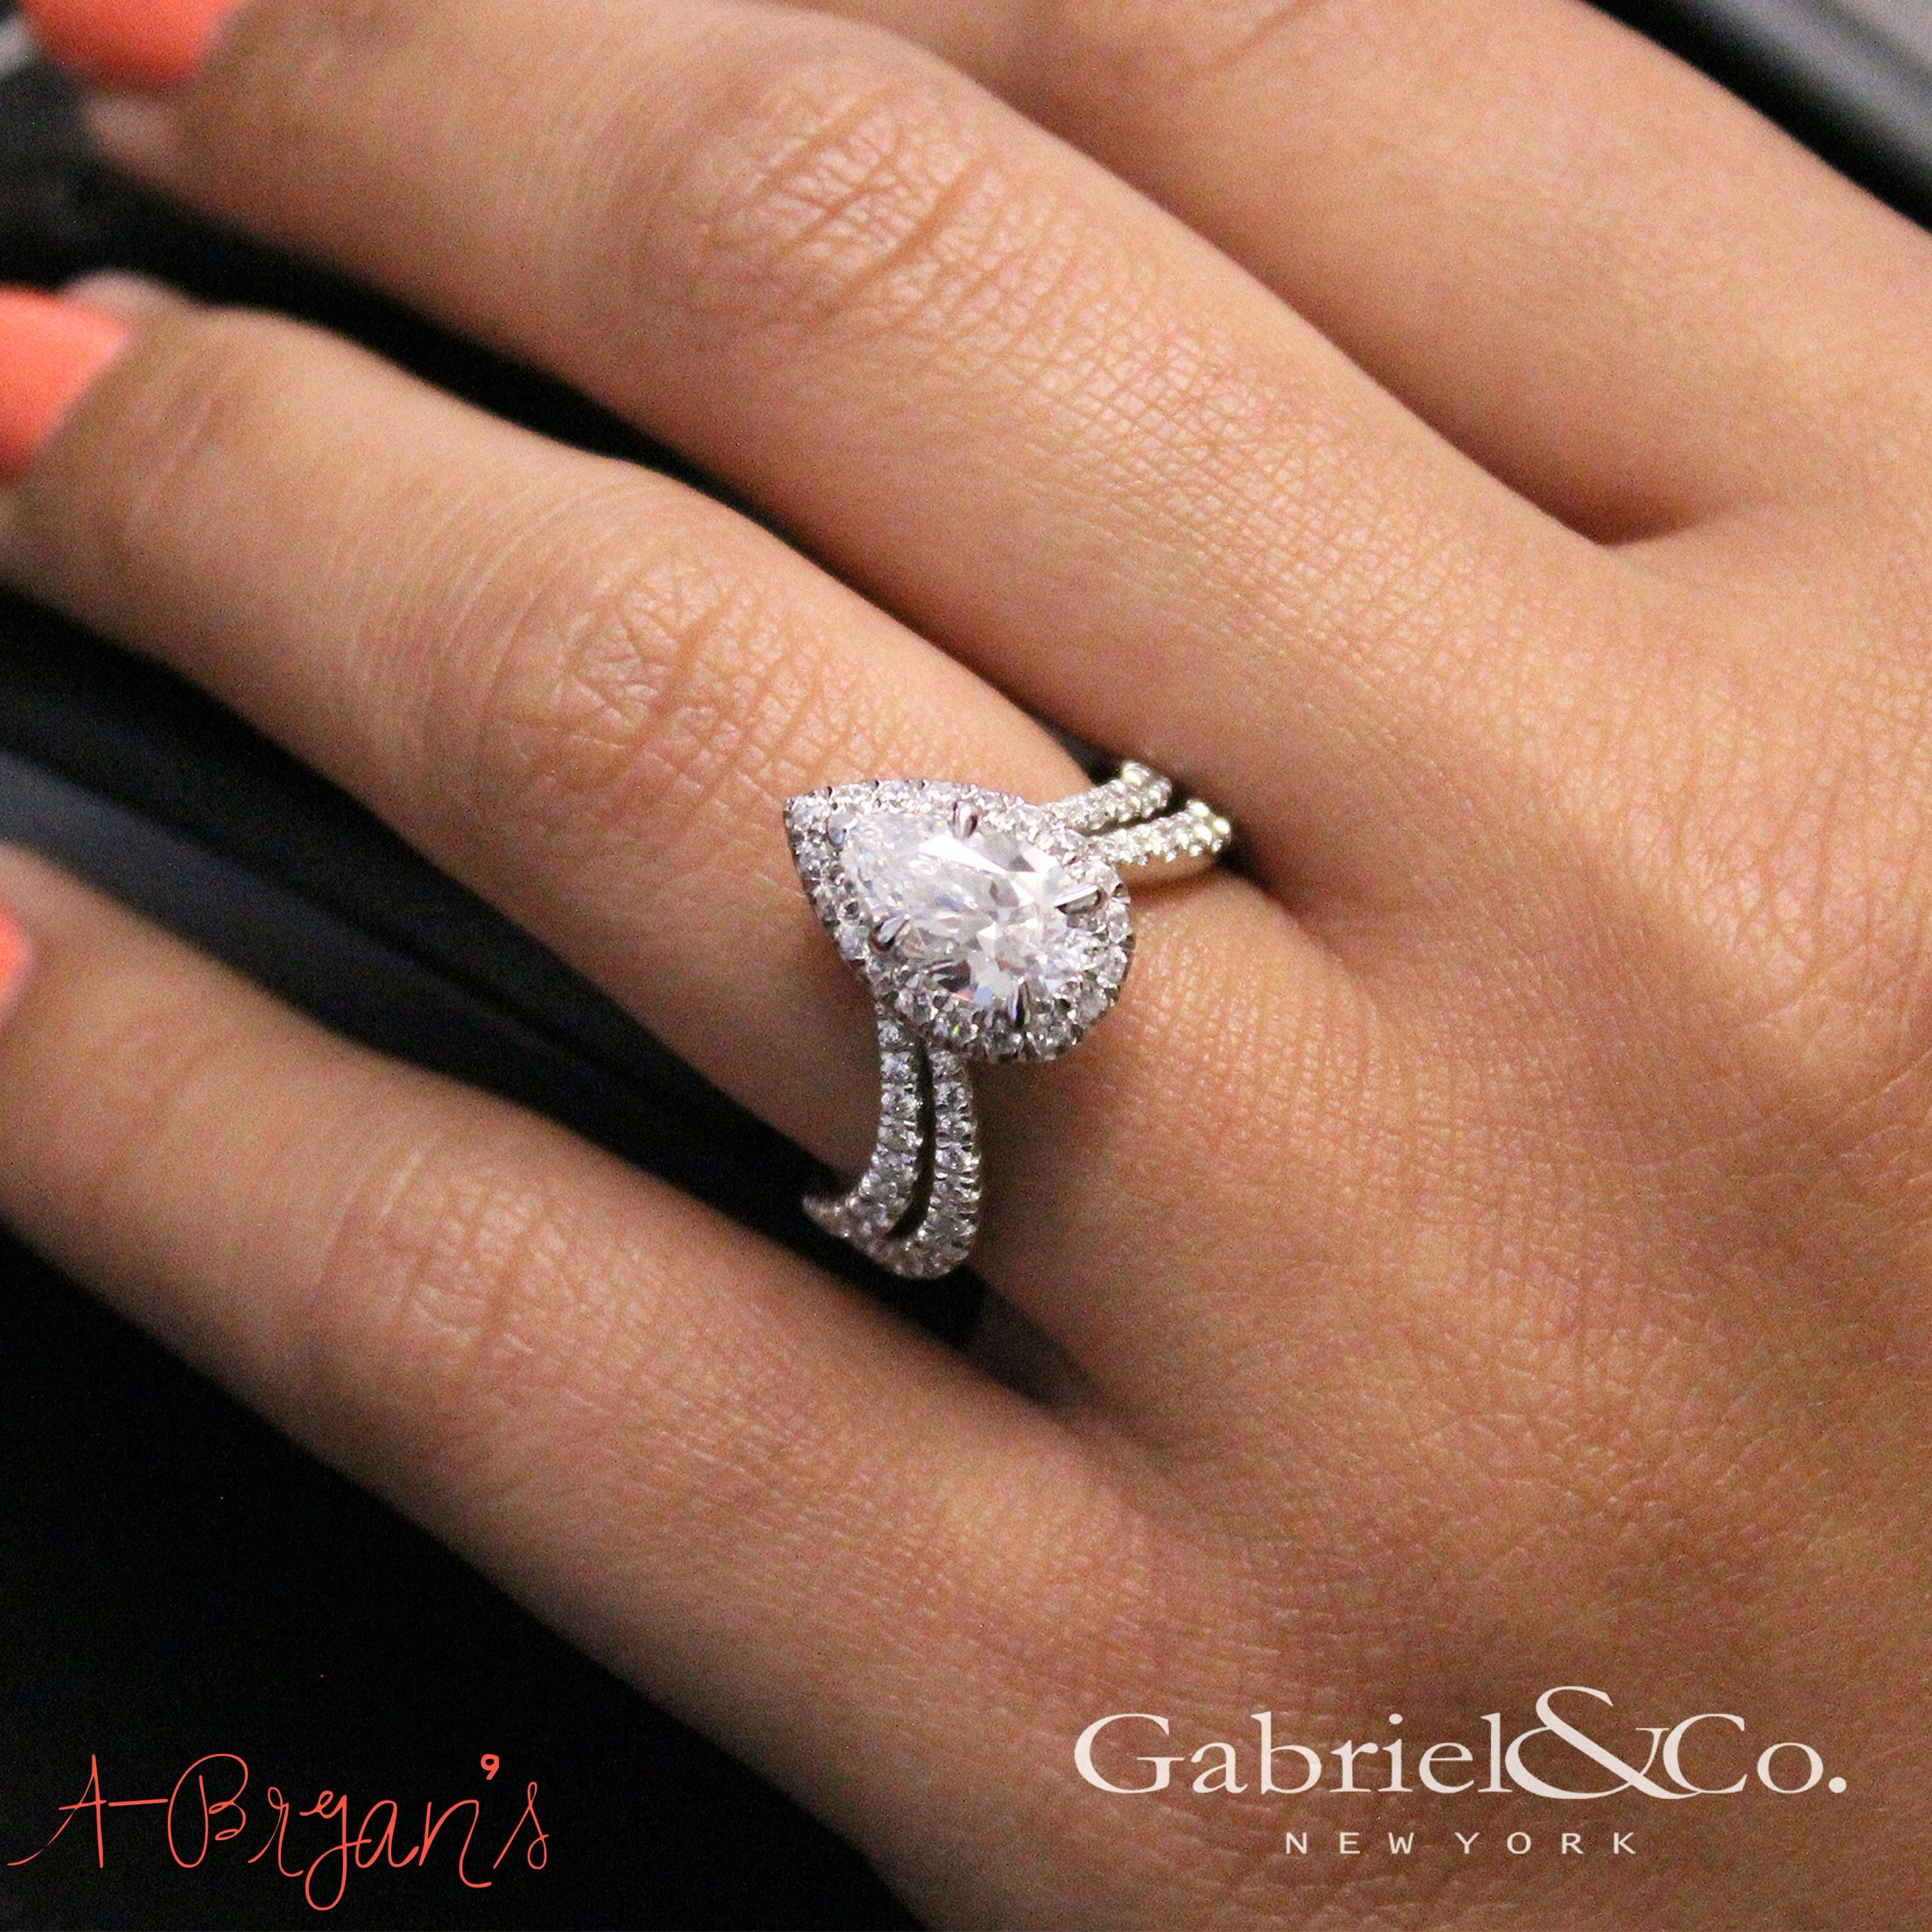 diamond hunter fssfv engagement image solitaire from description chisholm and more wedding diamonds rings